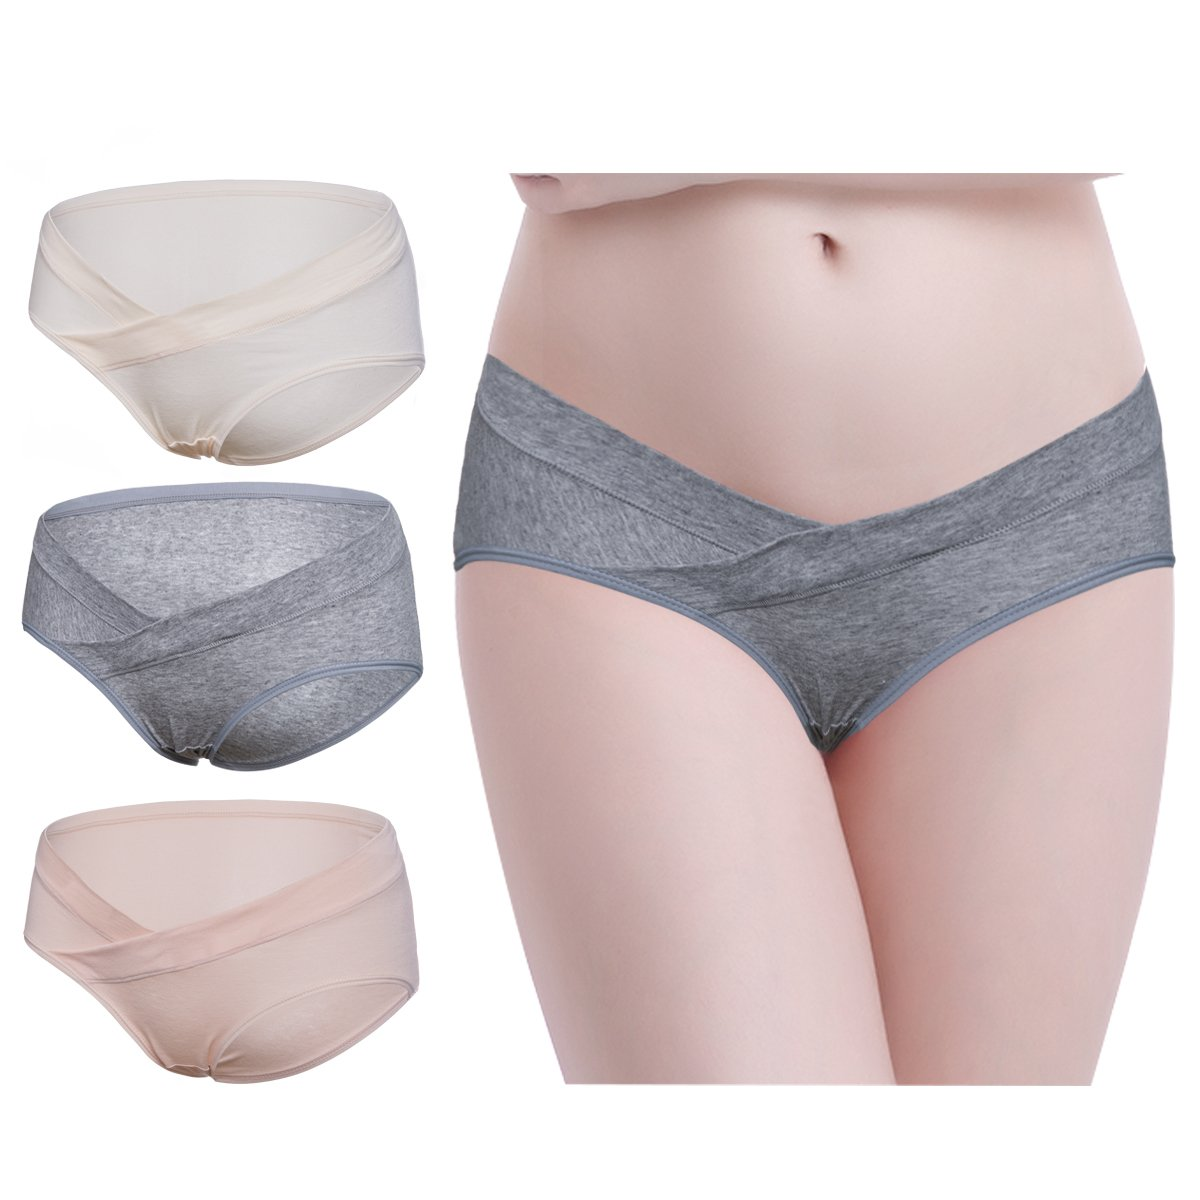 Under Bump Maternity Underpants Low Waist Belly Support Pregnancy Underwear 3PCS Mejor Only